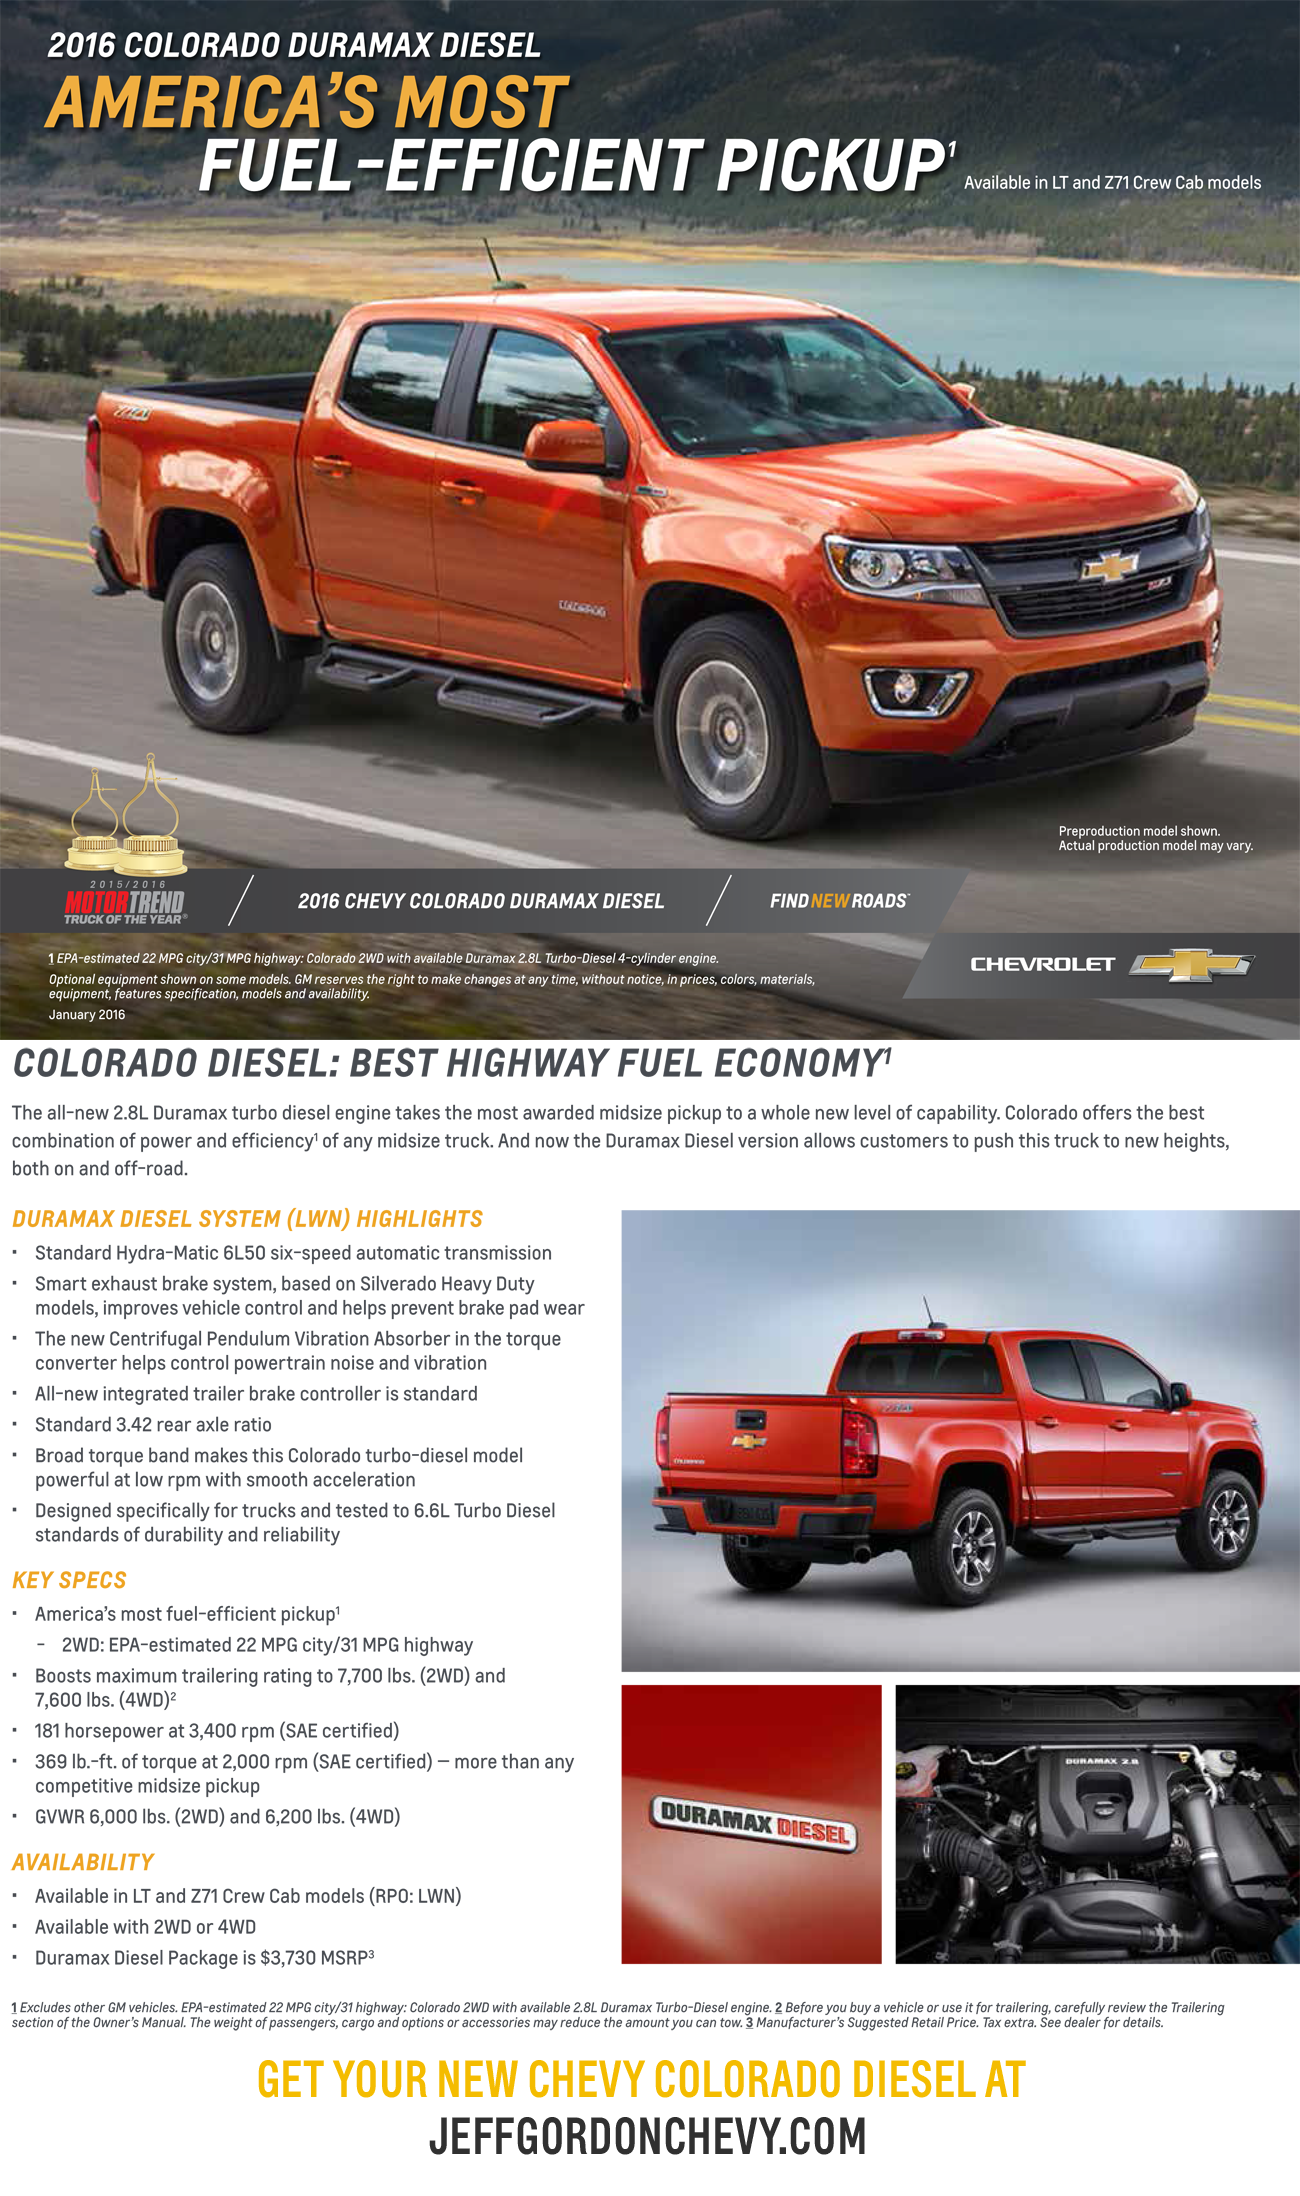 2016 chevrolet colorado duramax diesel america 39 s most fuel efficient pickup get yours at. Black Bedroom Furniture Sets. Home Design Ideas